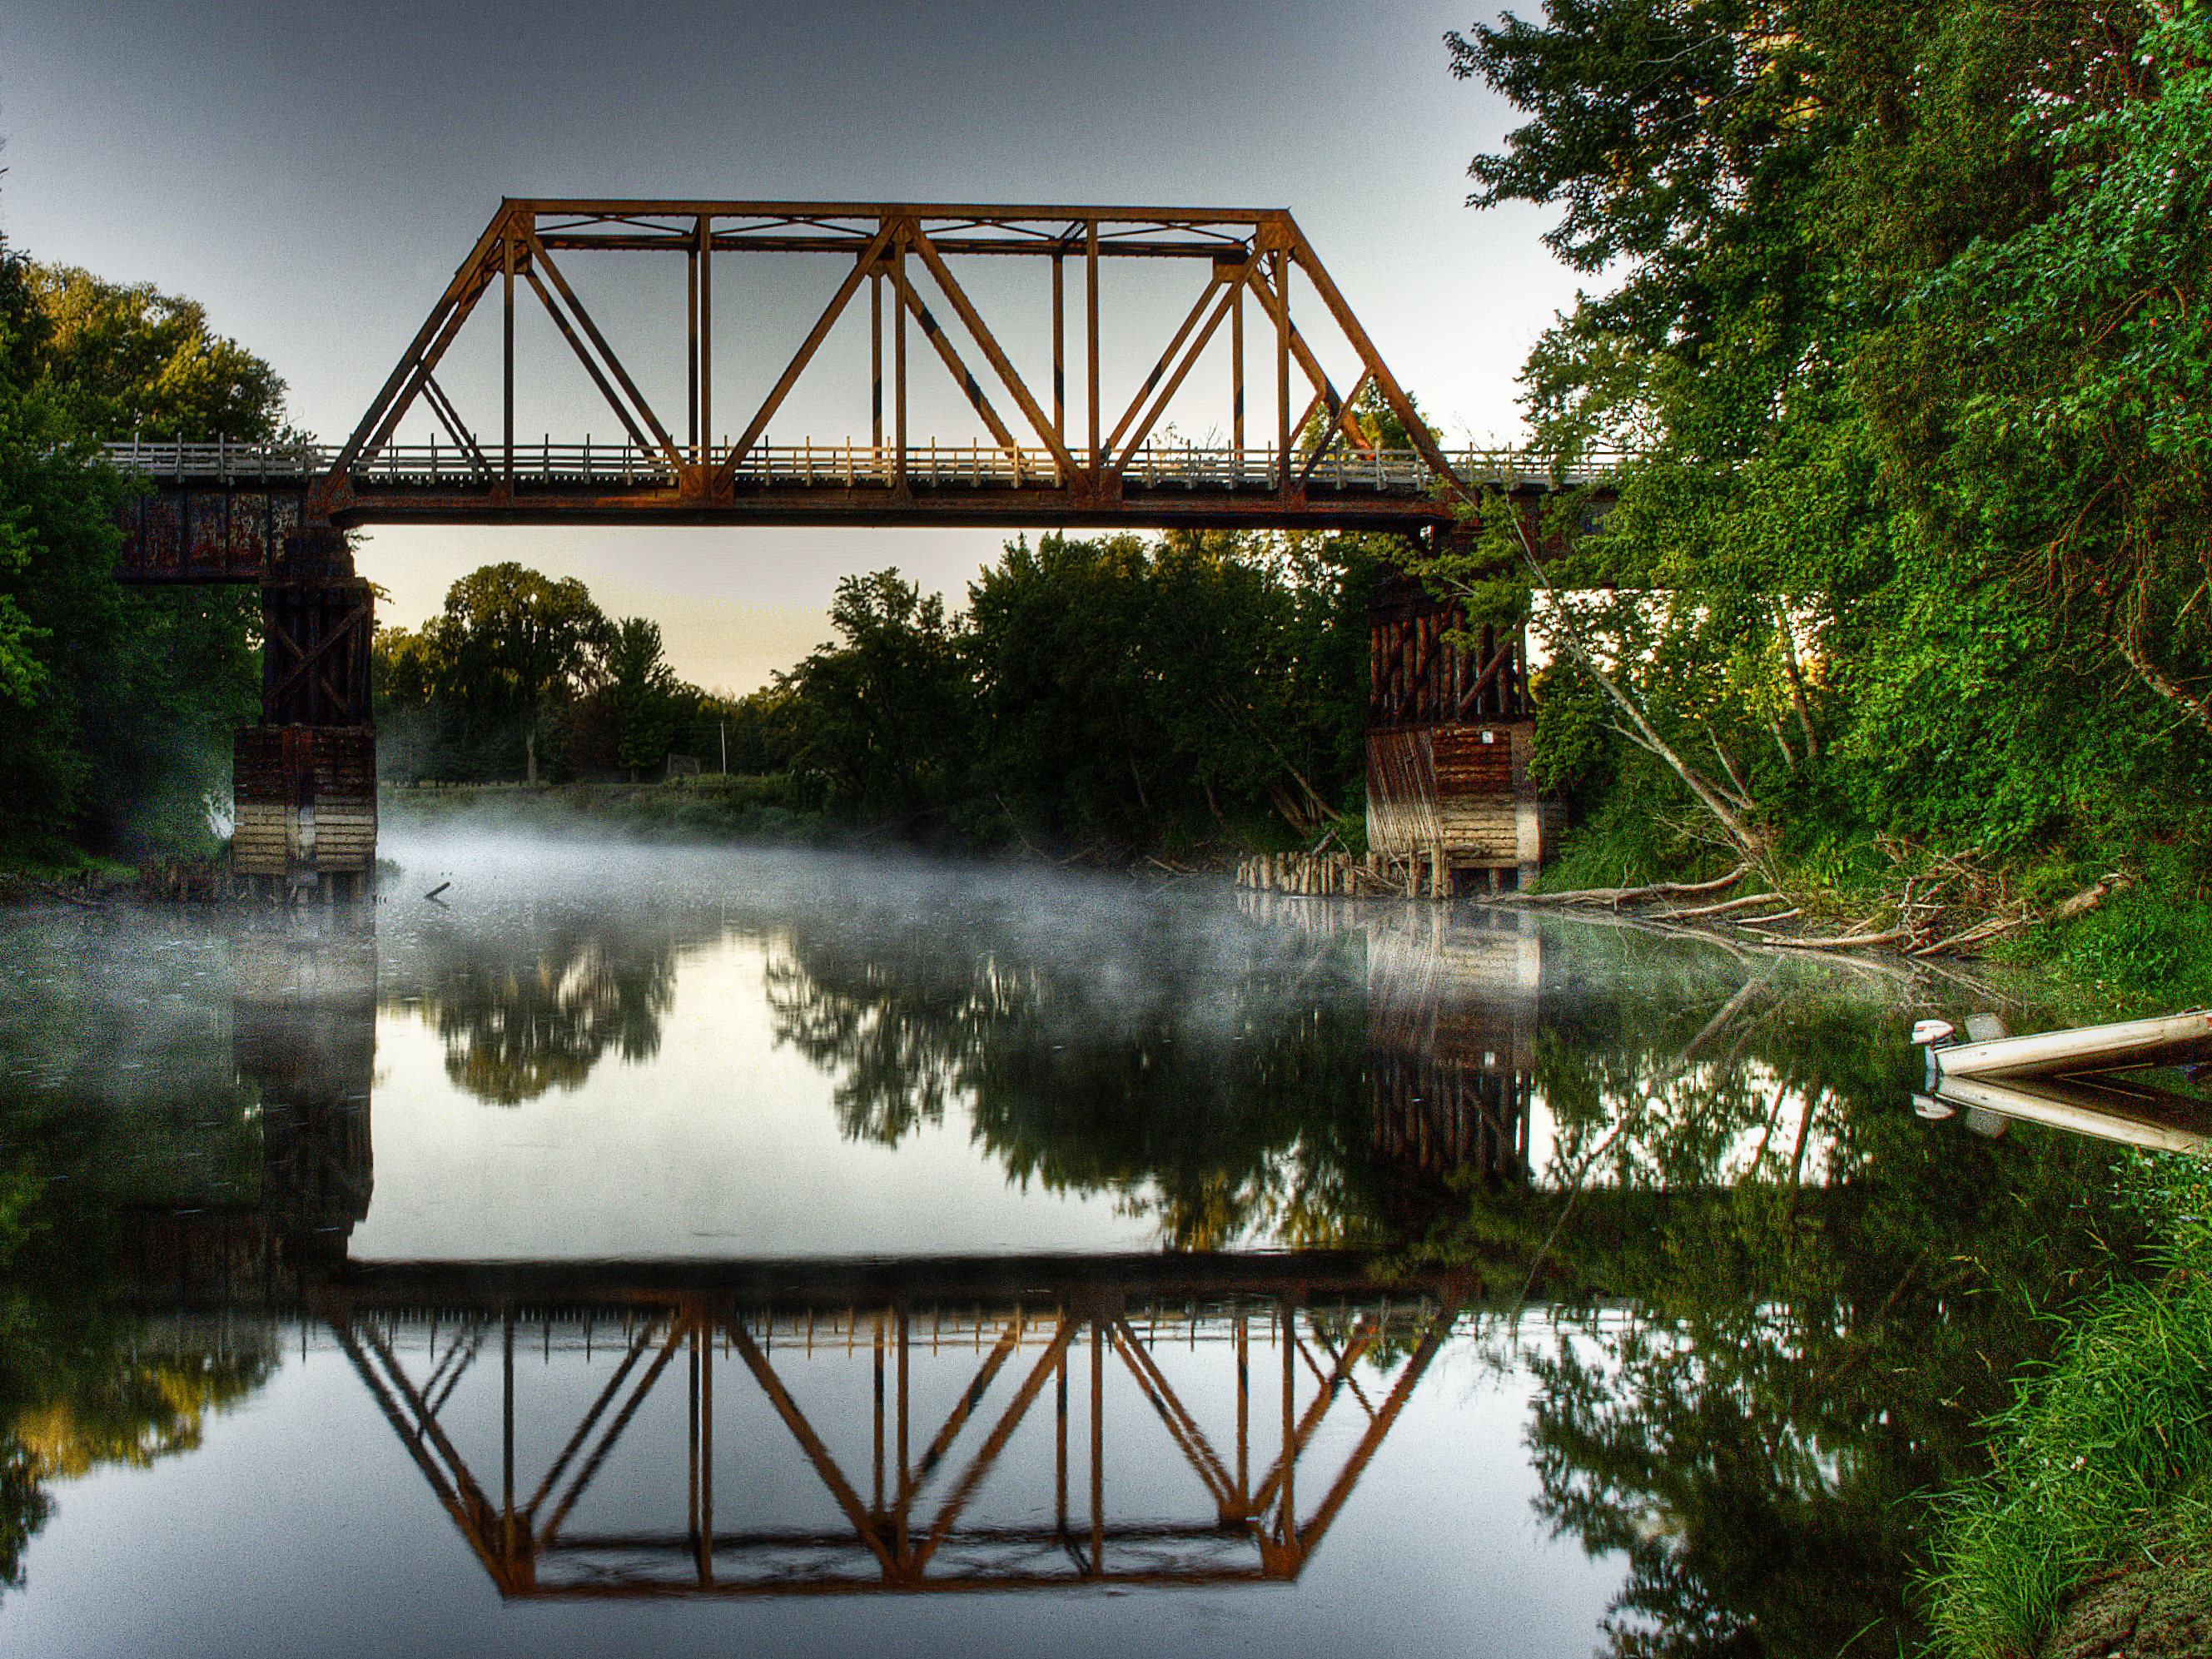 Steel truss bridge over the Mississippi River in Palisade, MN.